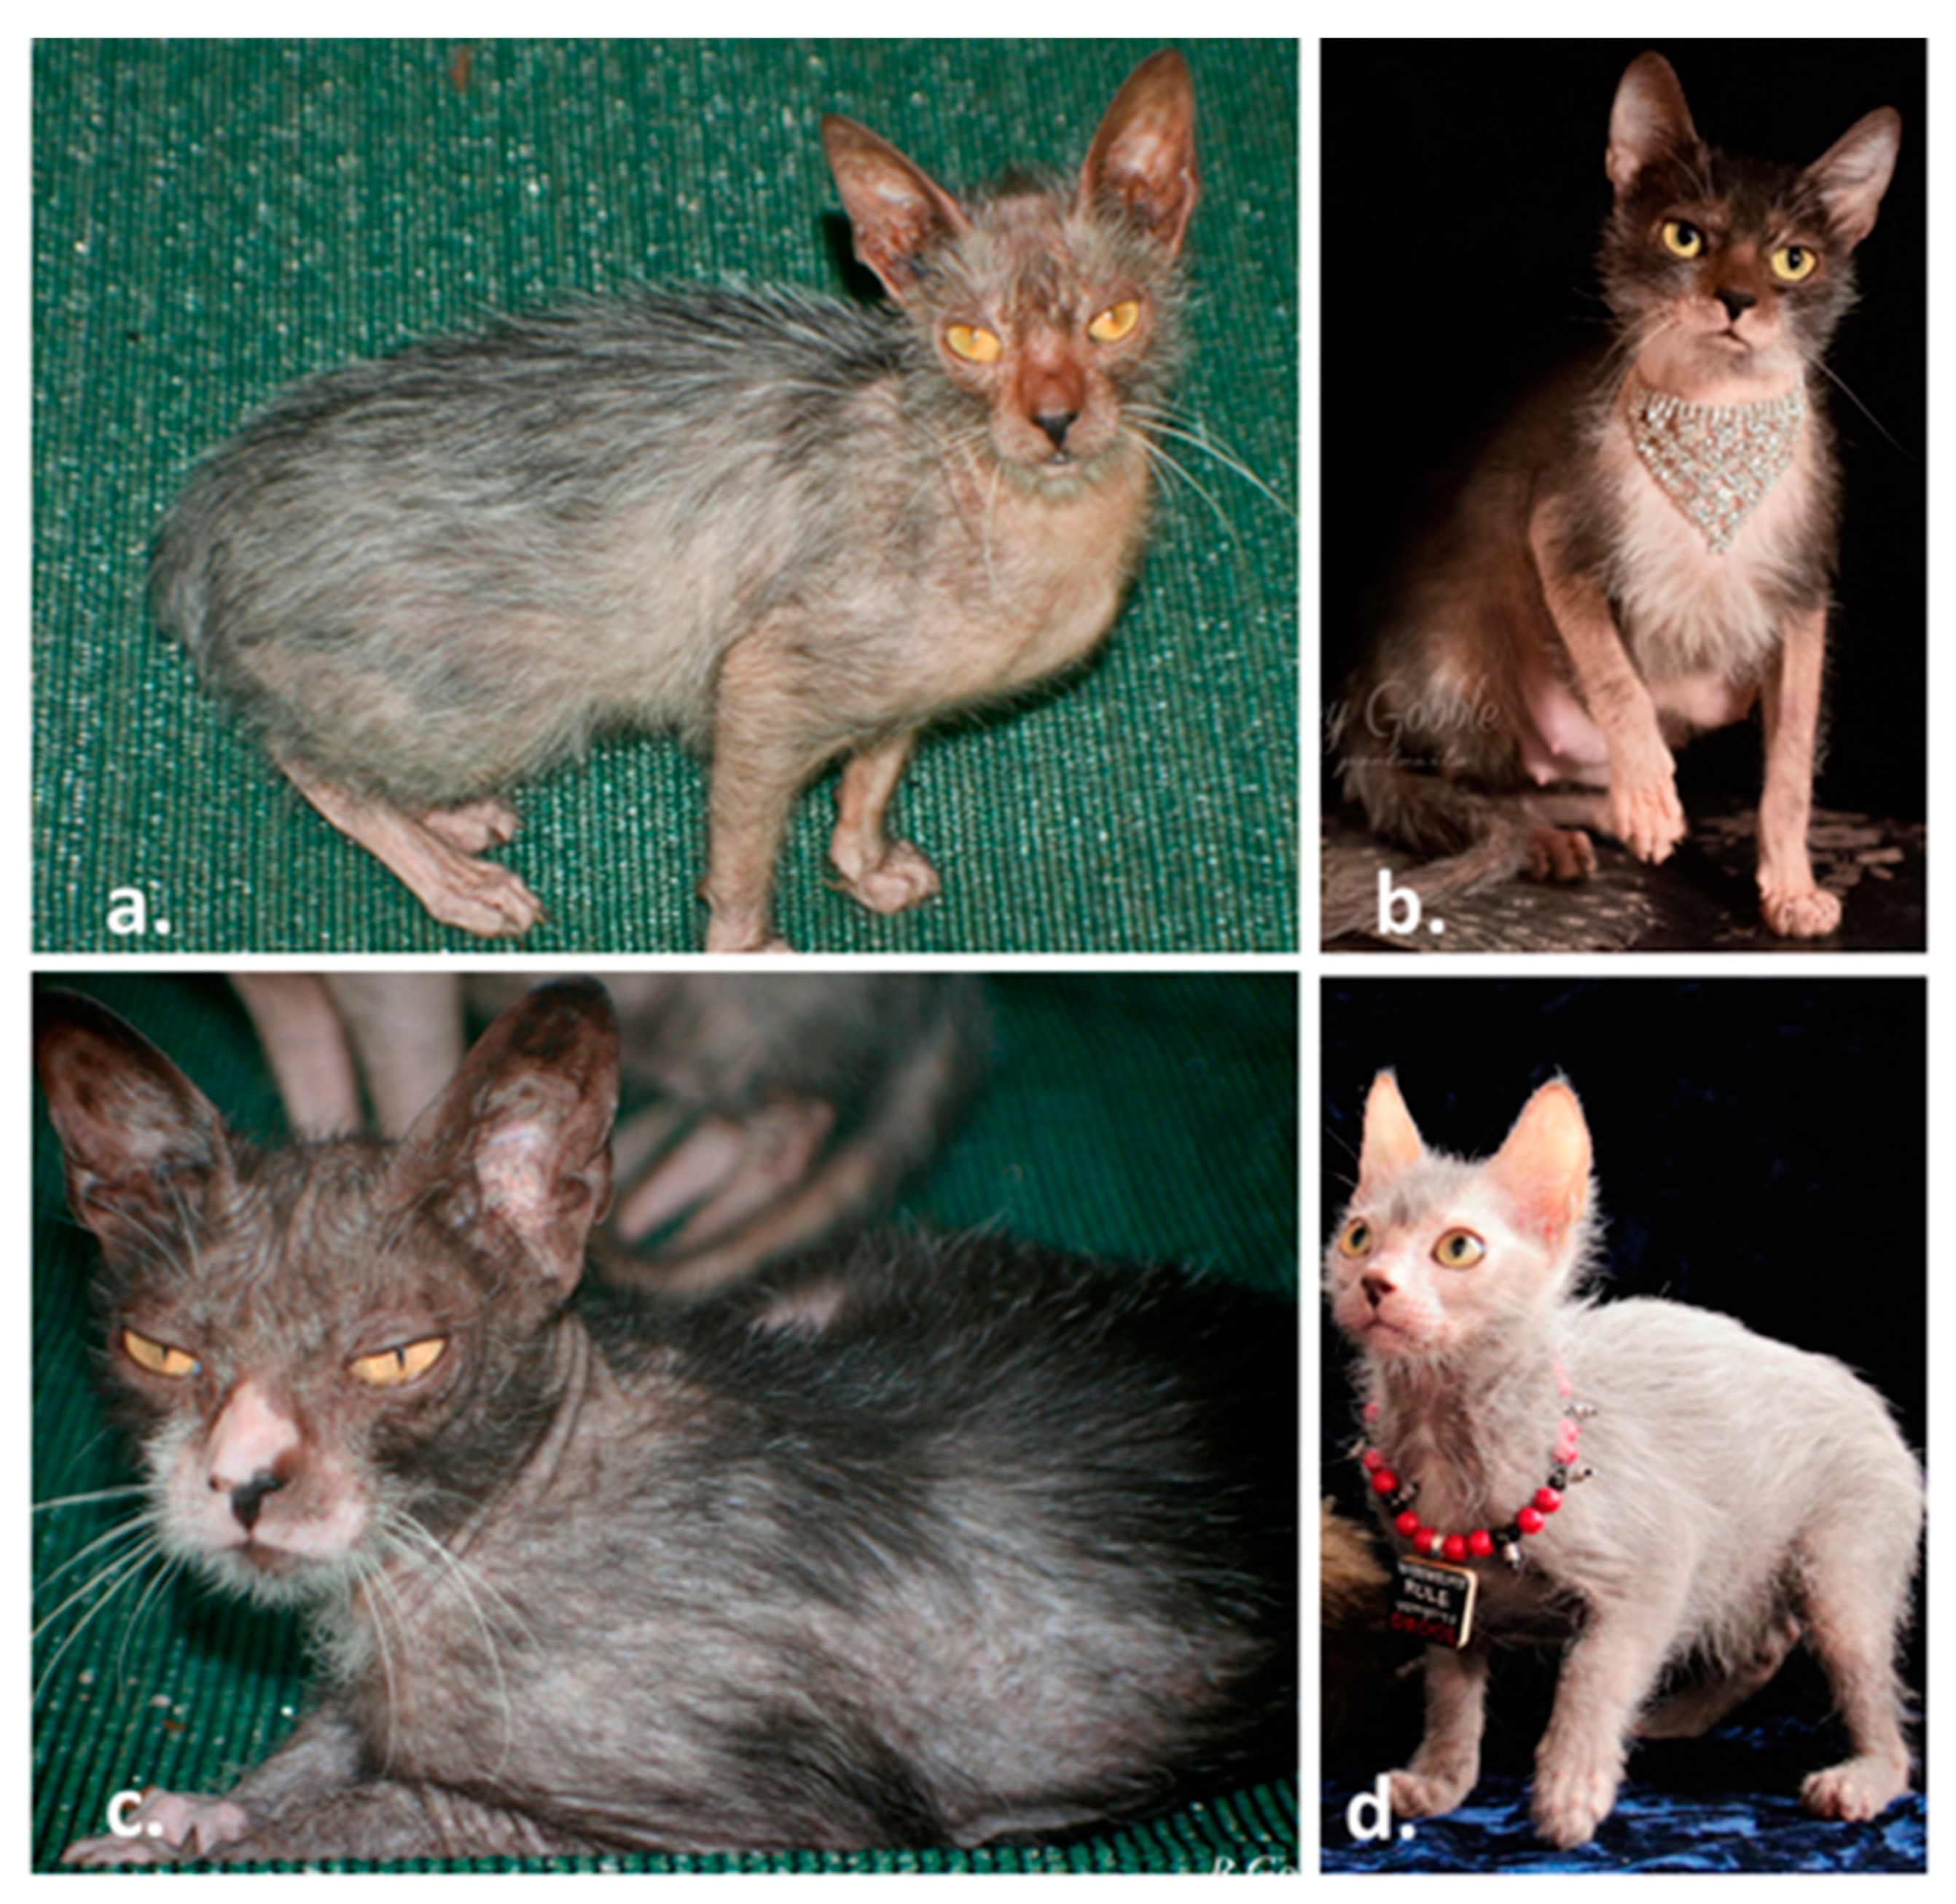 Genes Free Full Text Werewolf There Wolf Variants In Hairless Associated With Hypotrichia And Roaning In The Lykoi Cat Breed